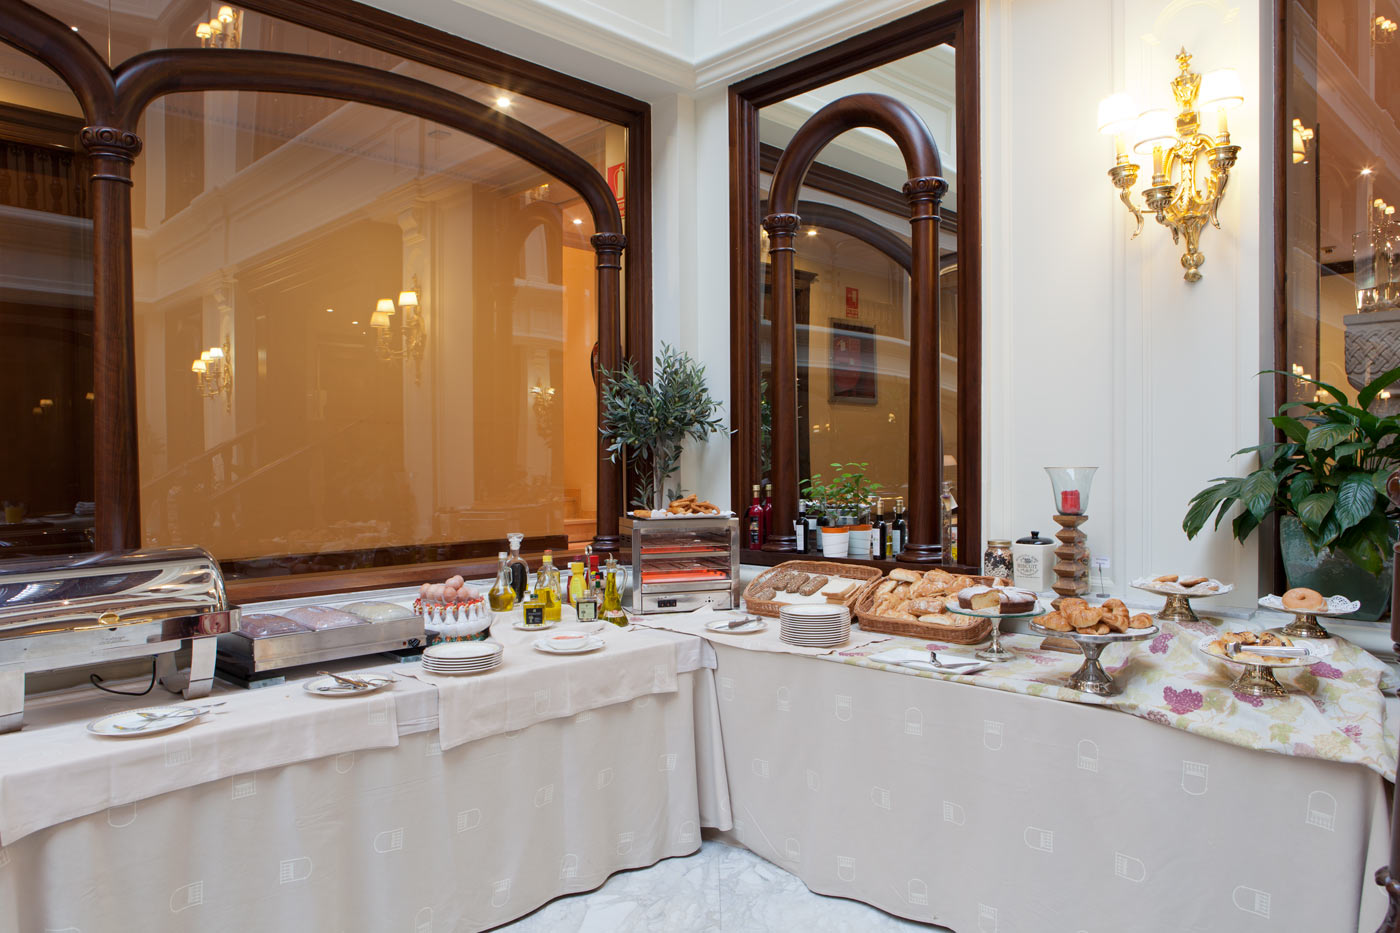 Hotel Don Pio - Hall Desayunos